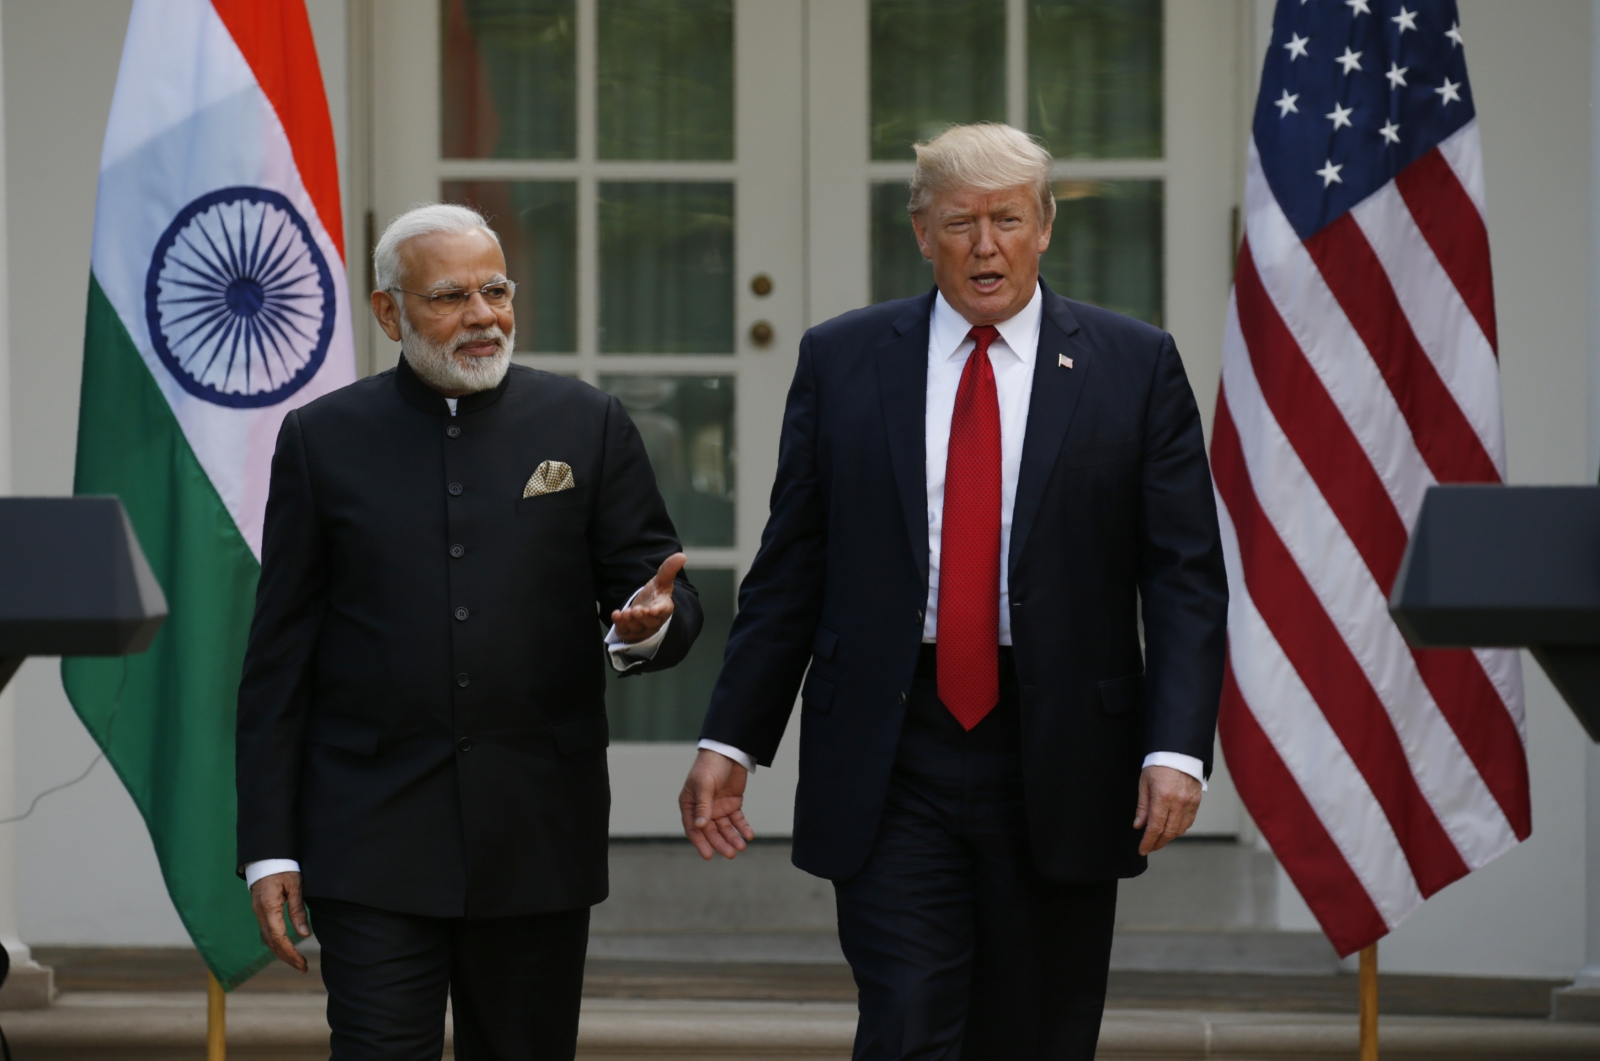 Trump says US-India ties have 'never been stronger and better'